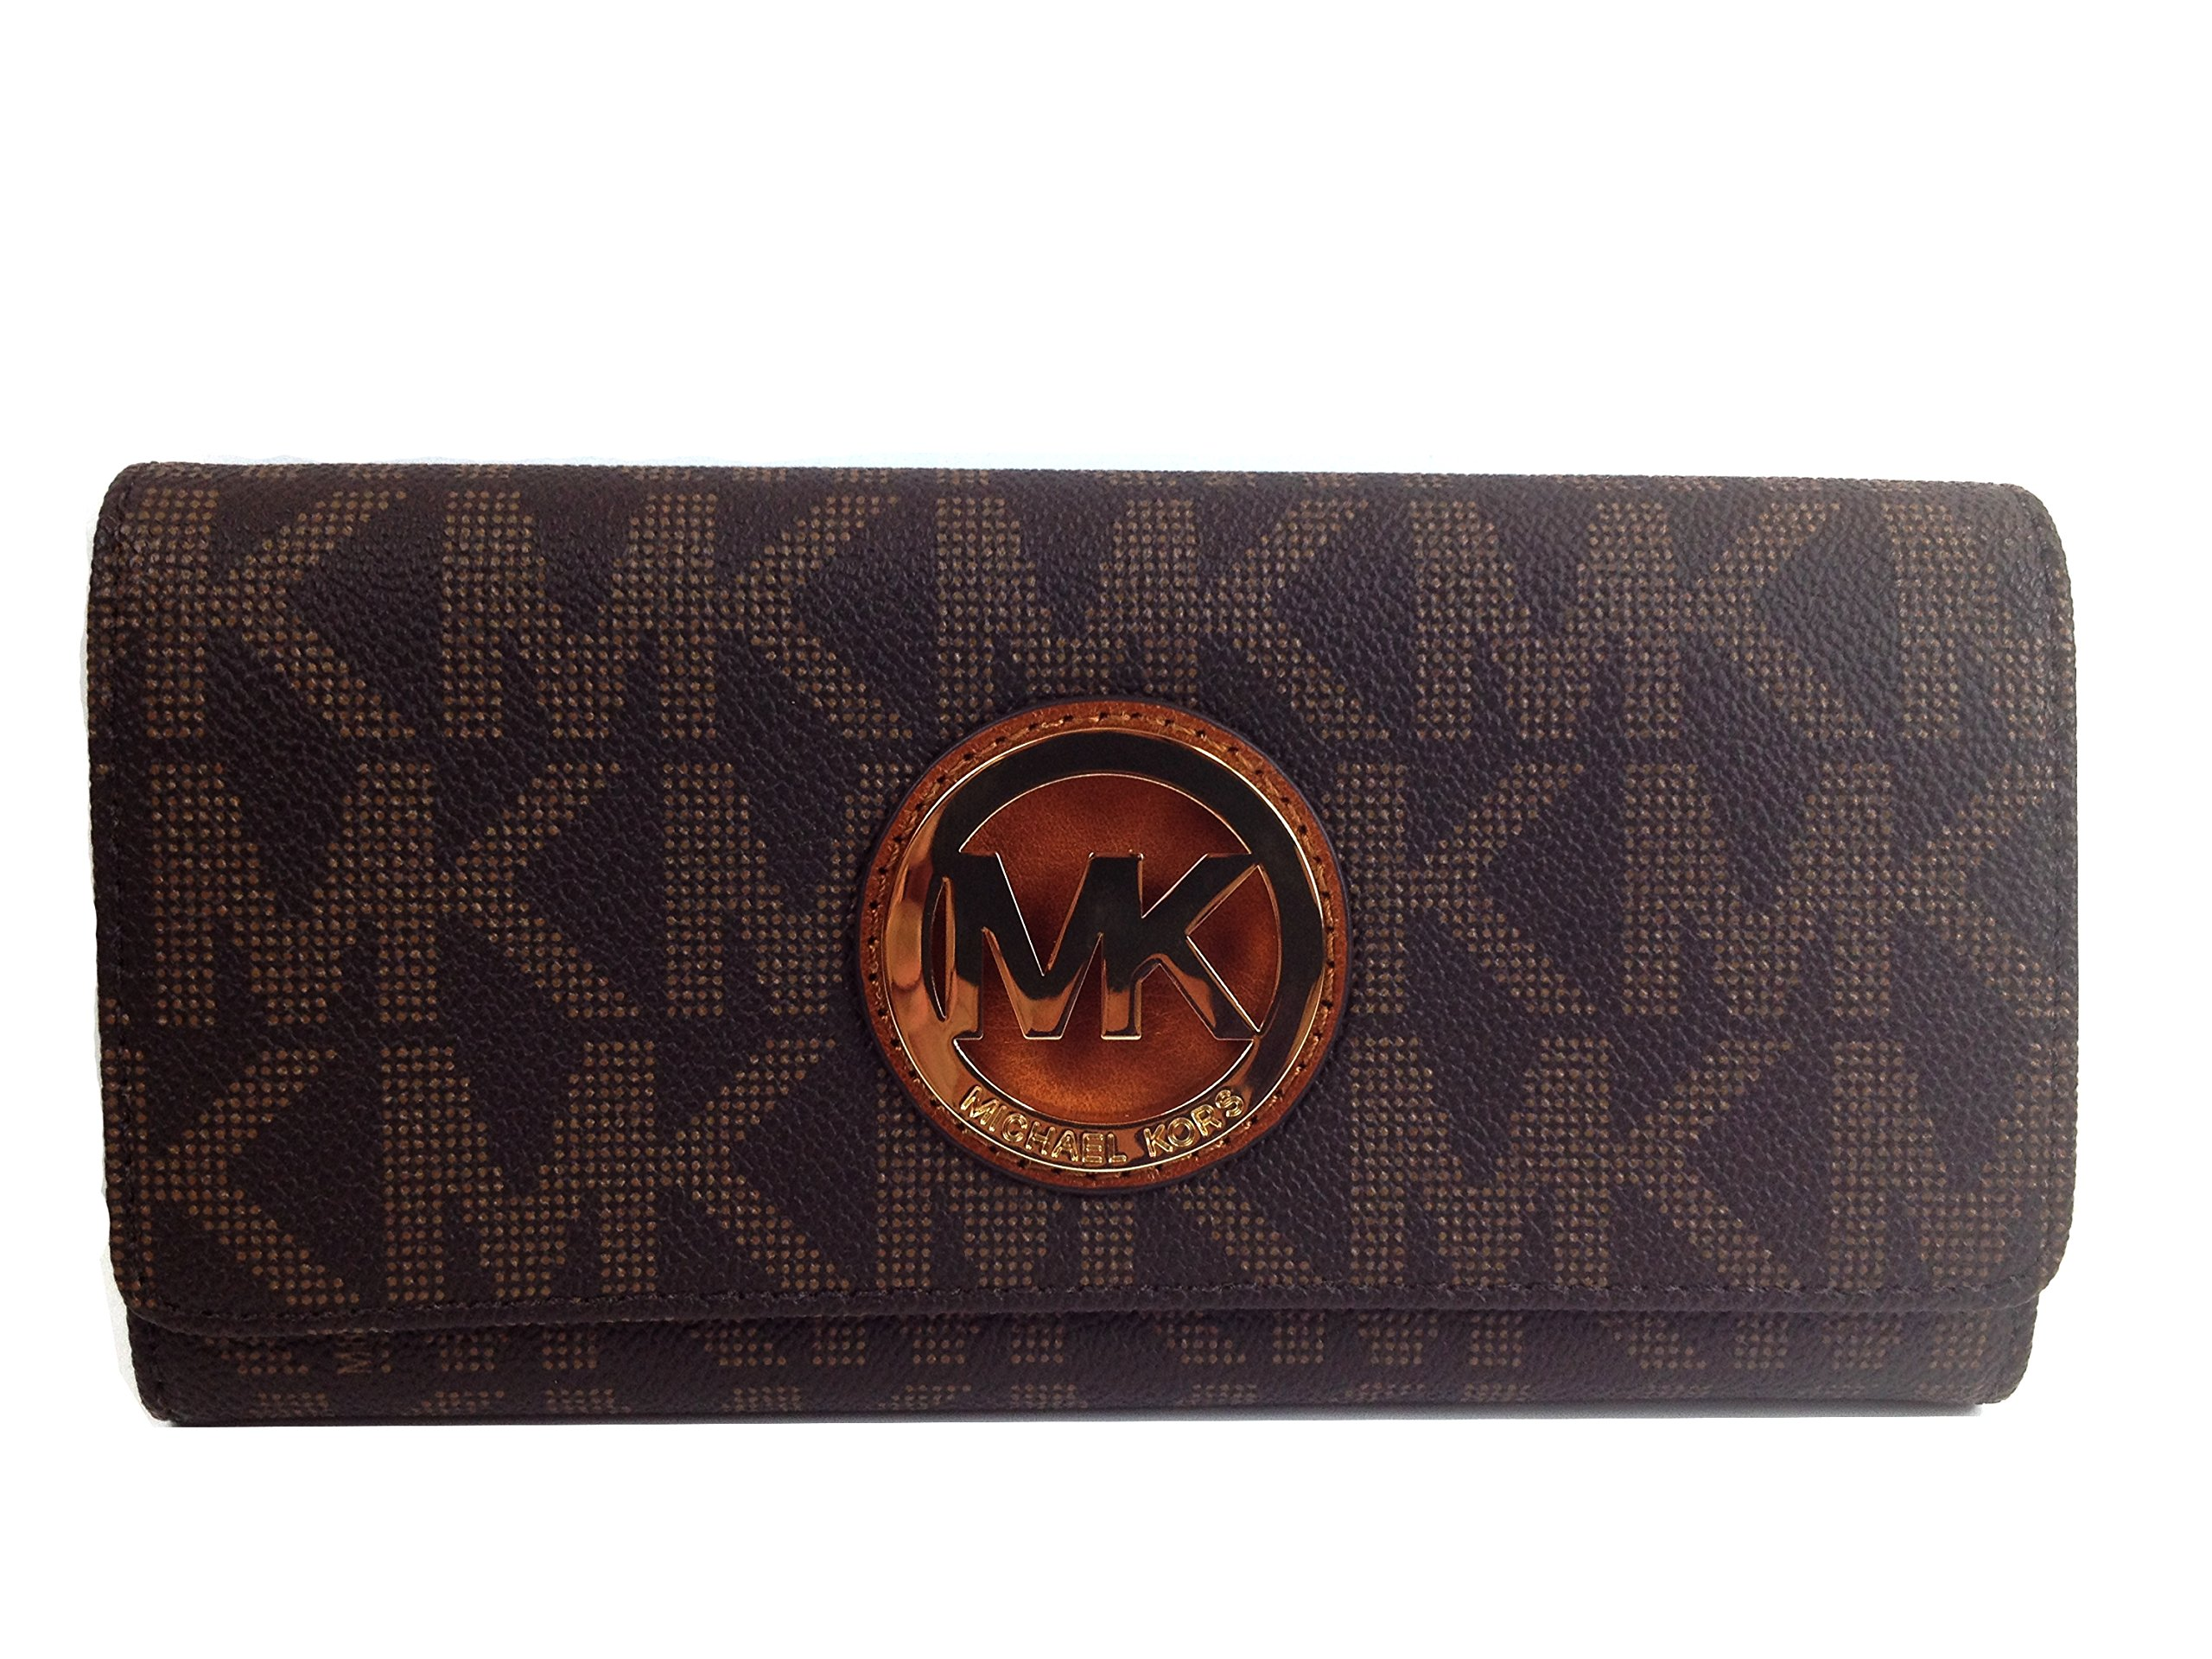 Michael Kors Signature PVC Fulton Flap Wallet in Brown